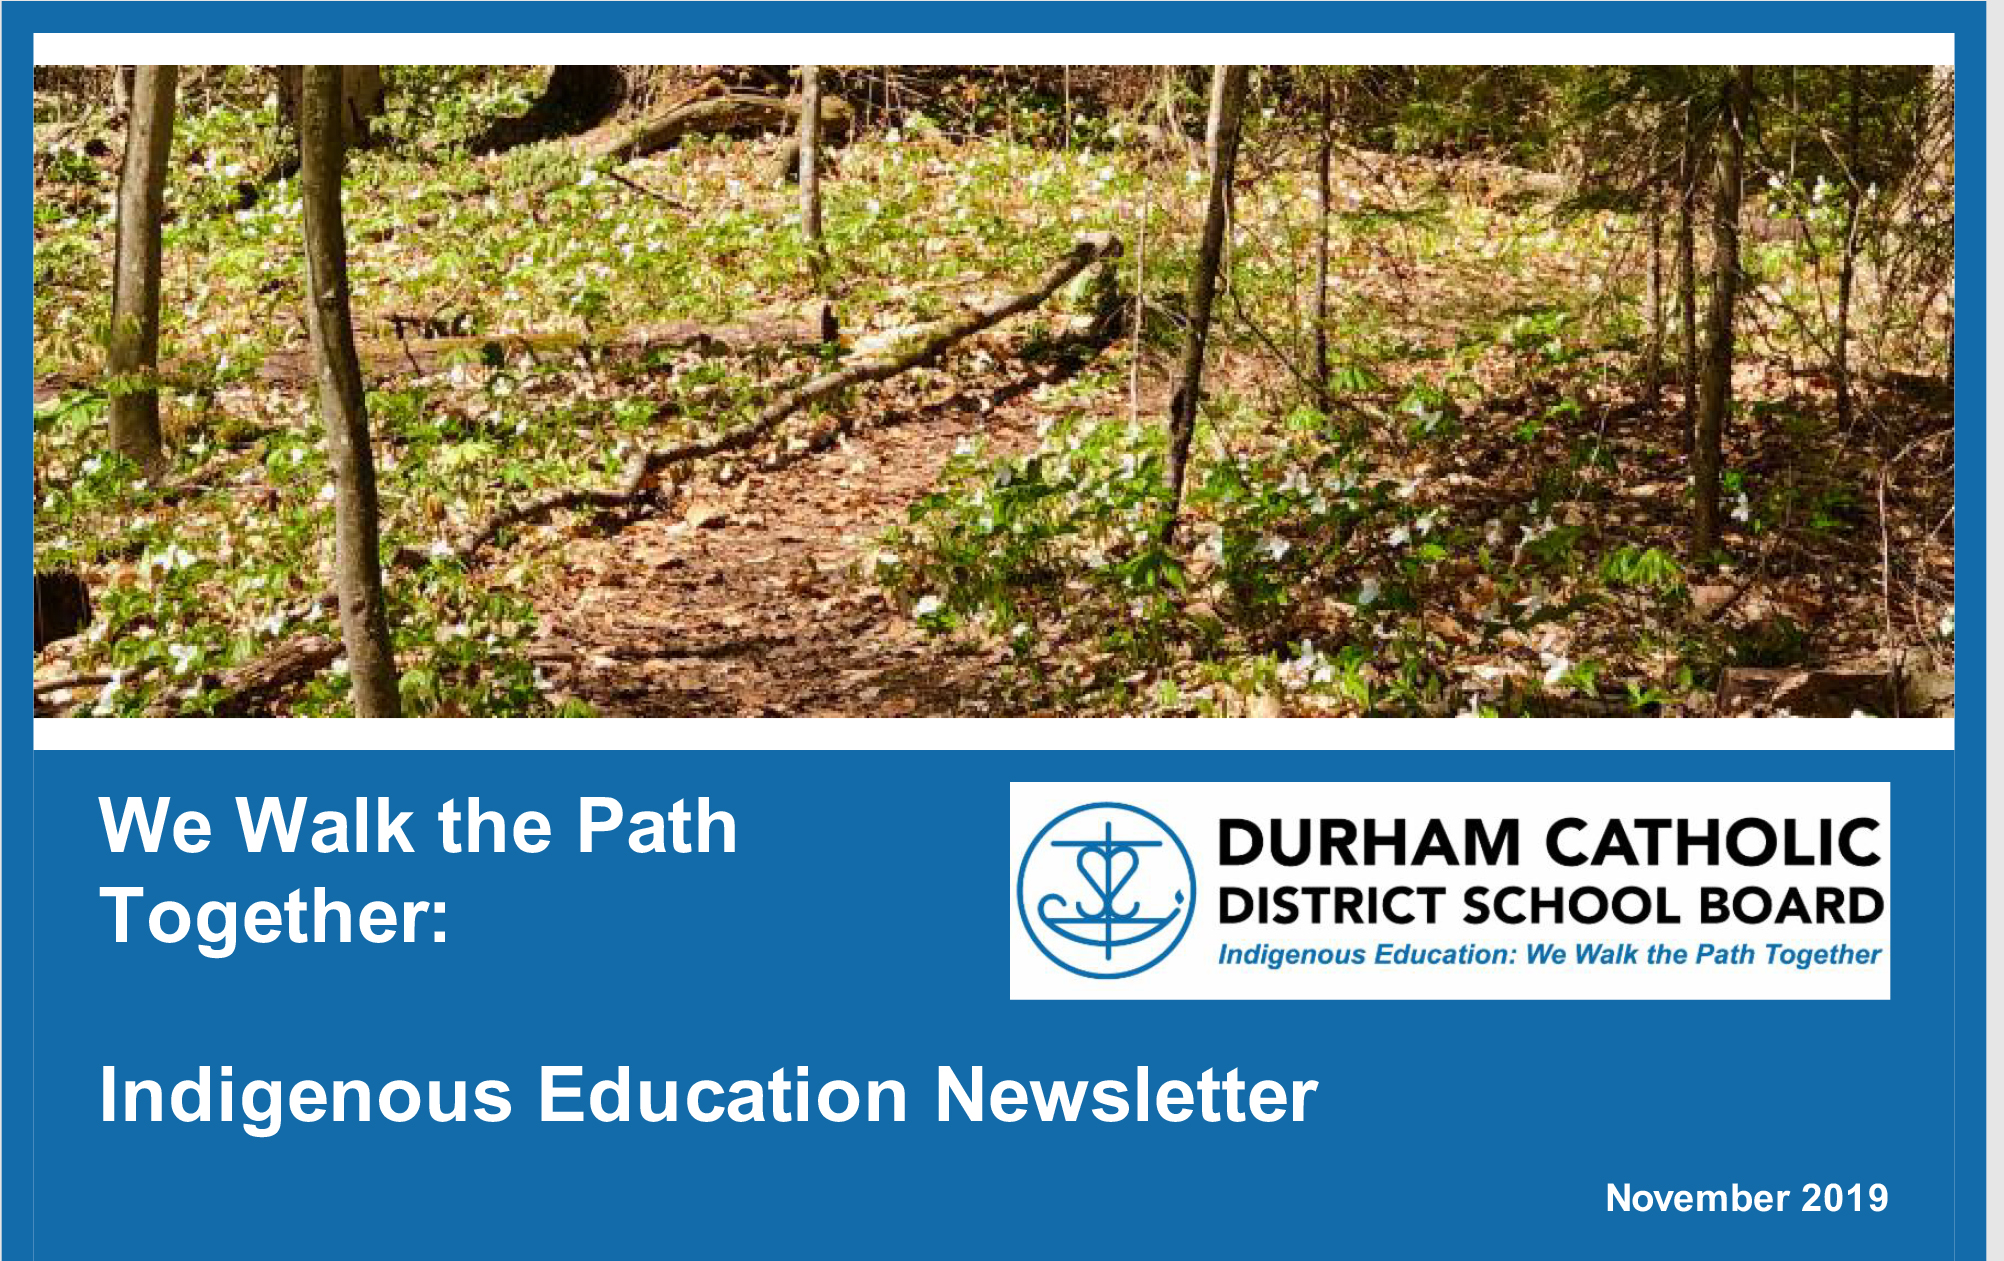 Indigenous Education newsletter banner - We Walk the Path Together